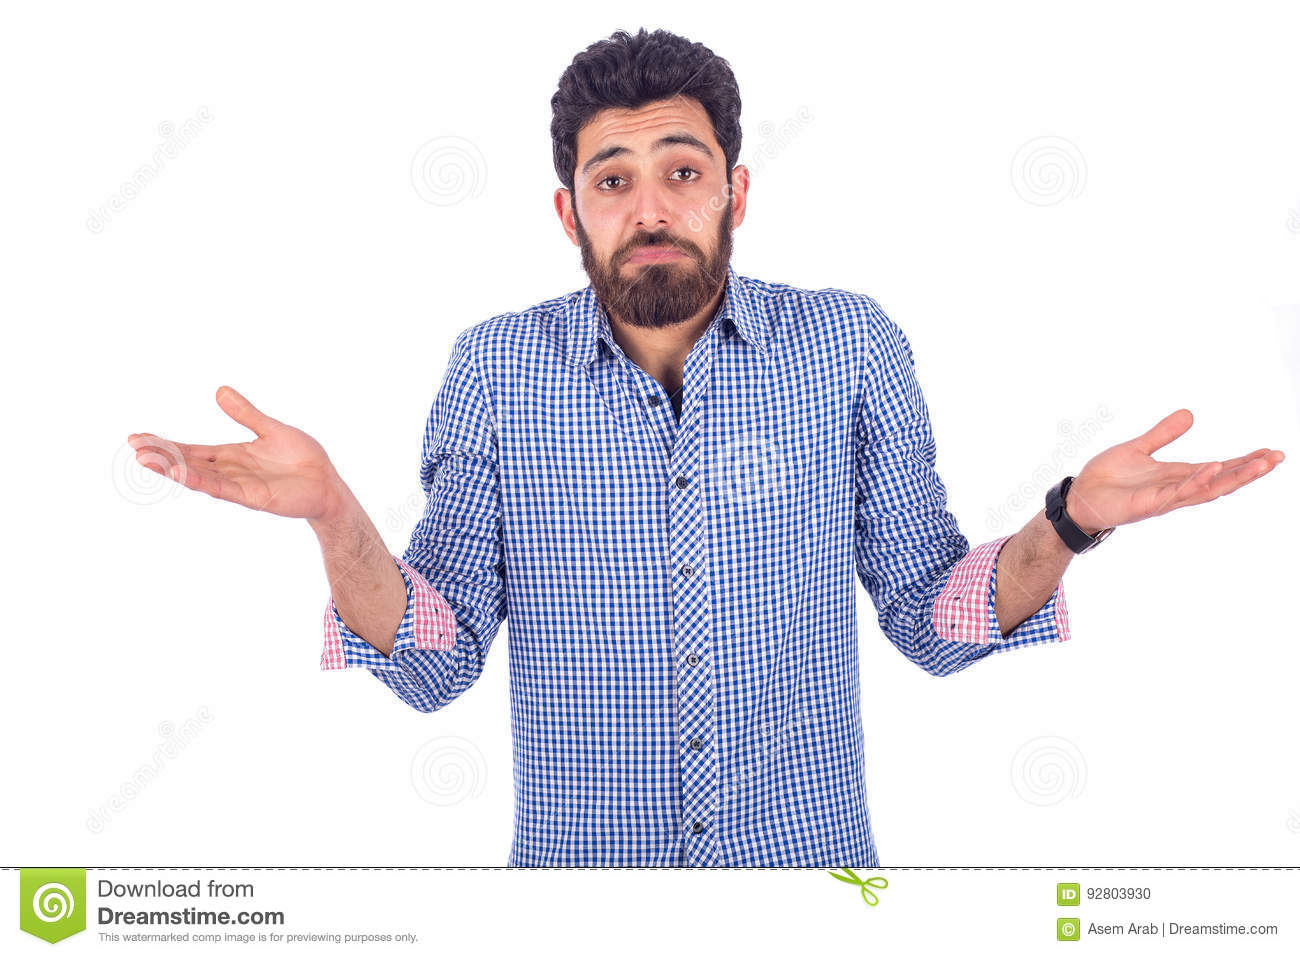 2d6fe6afae5 Beard young man feeling puzzled and wearing blue shirt isolated on white  background